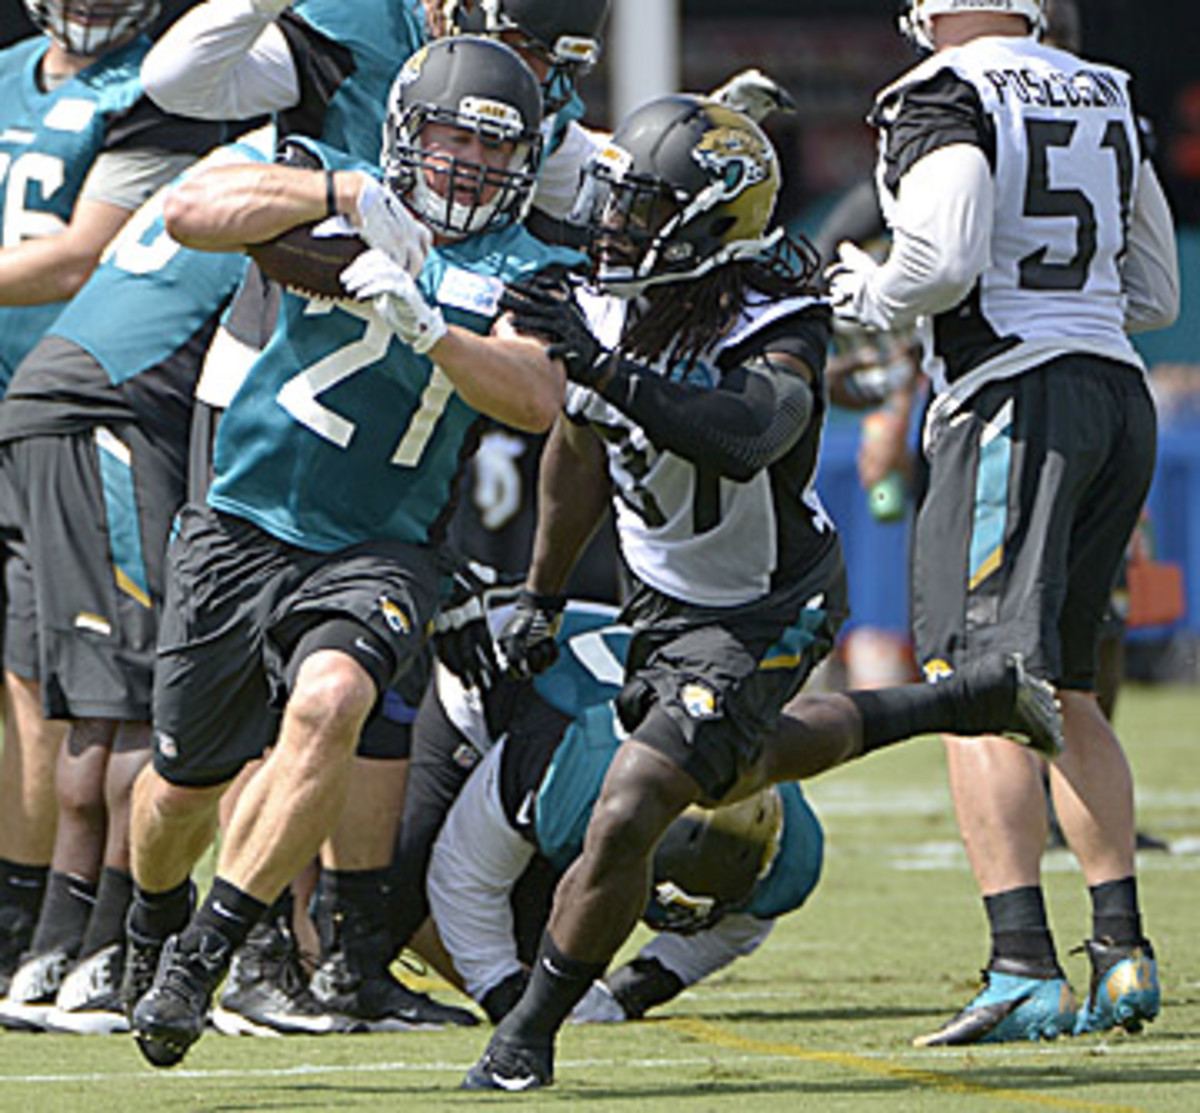 The Jaguars will feature a heavy dose of Gerhart. (Phelan M. Ebenhack)